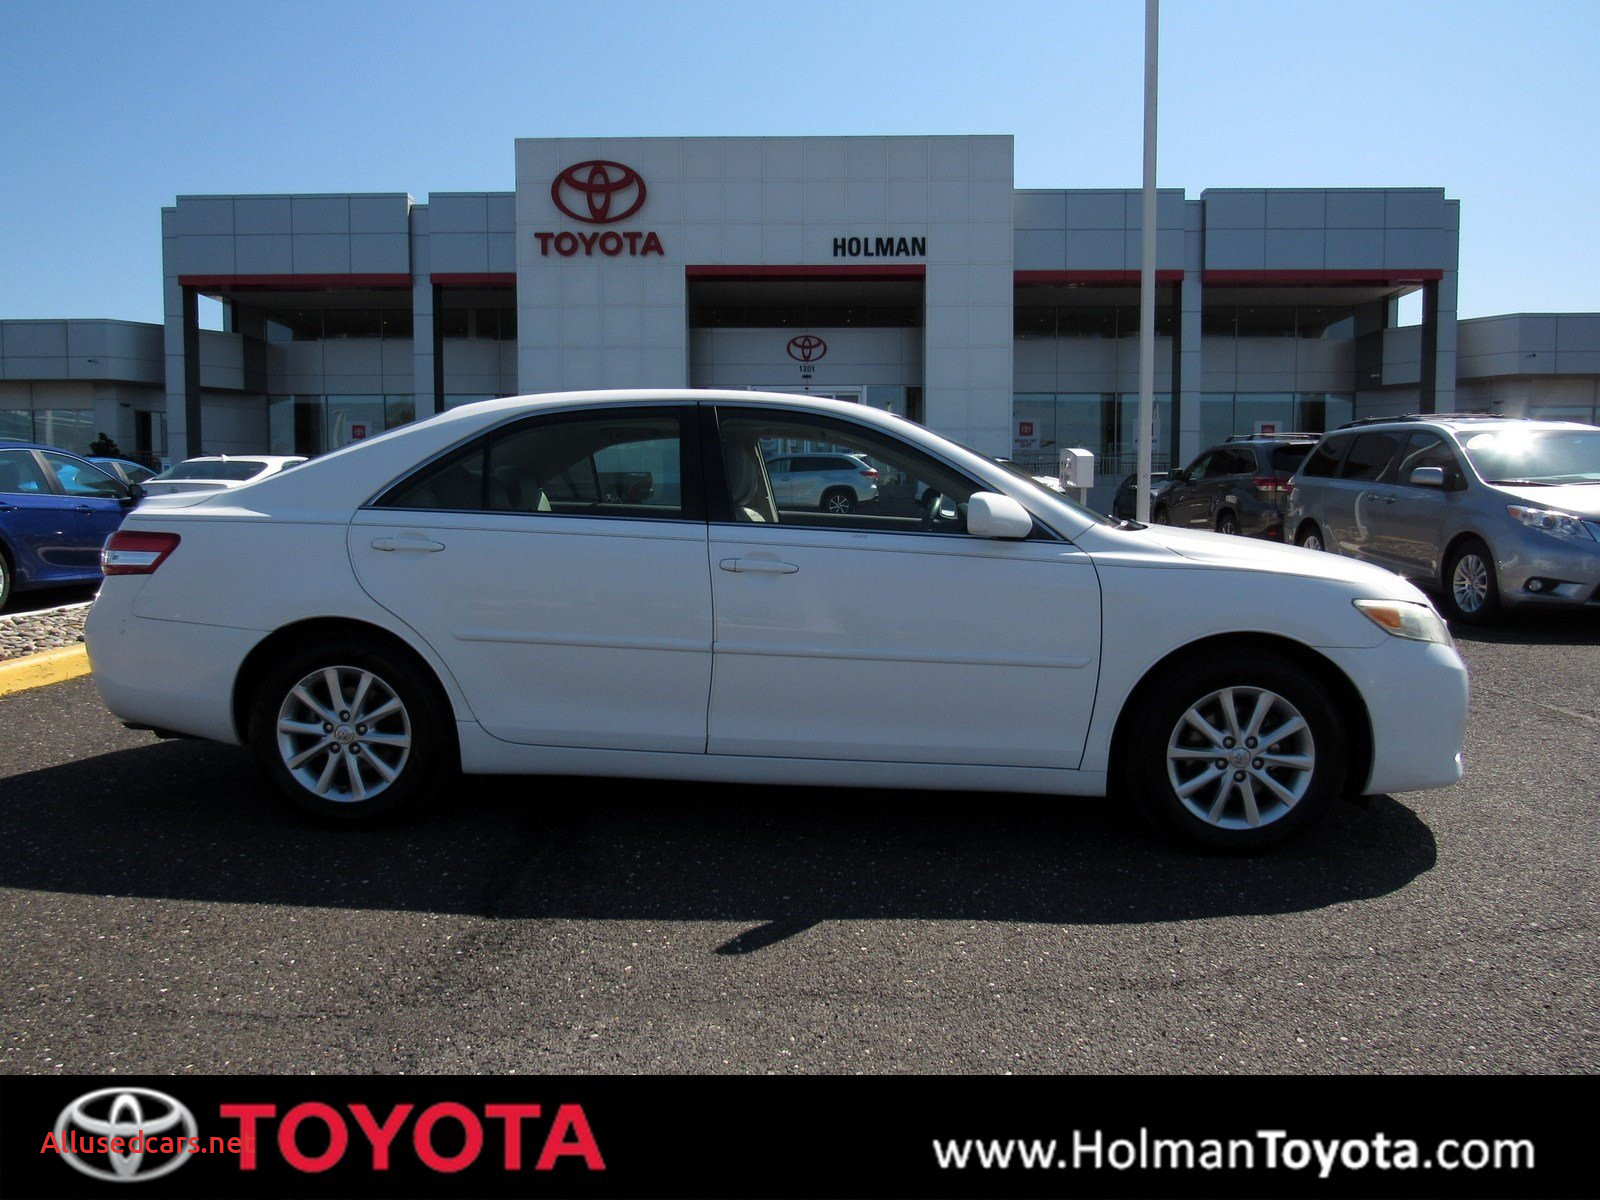 Find Used Vehicles Elegant toyota Pre Owned Vehicles Holman toyota Used Cars